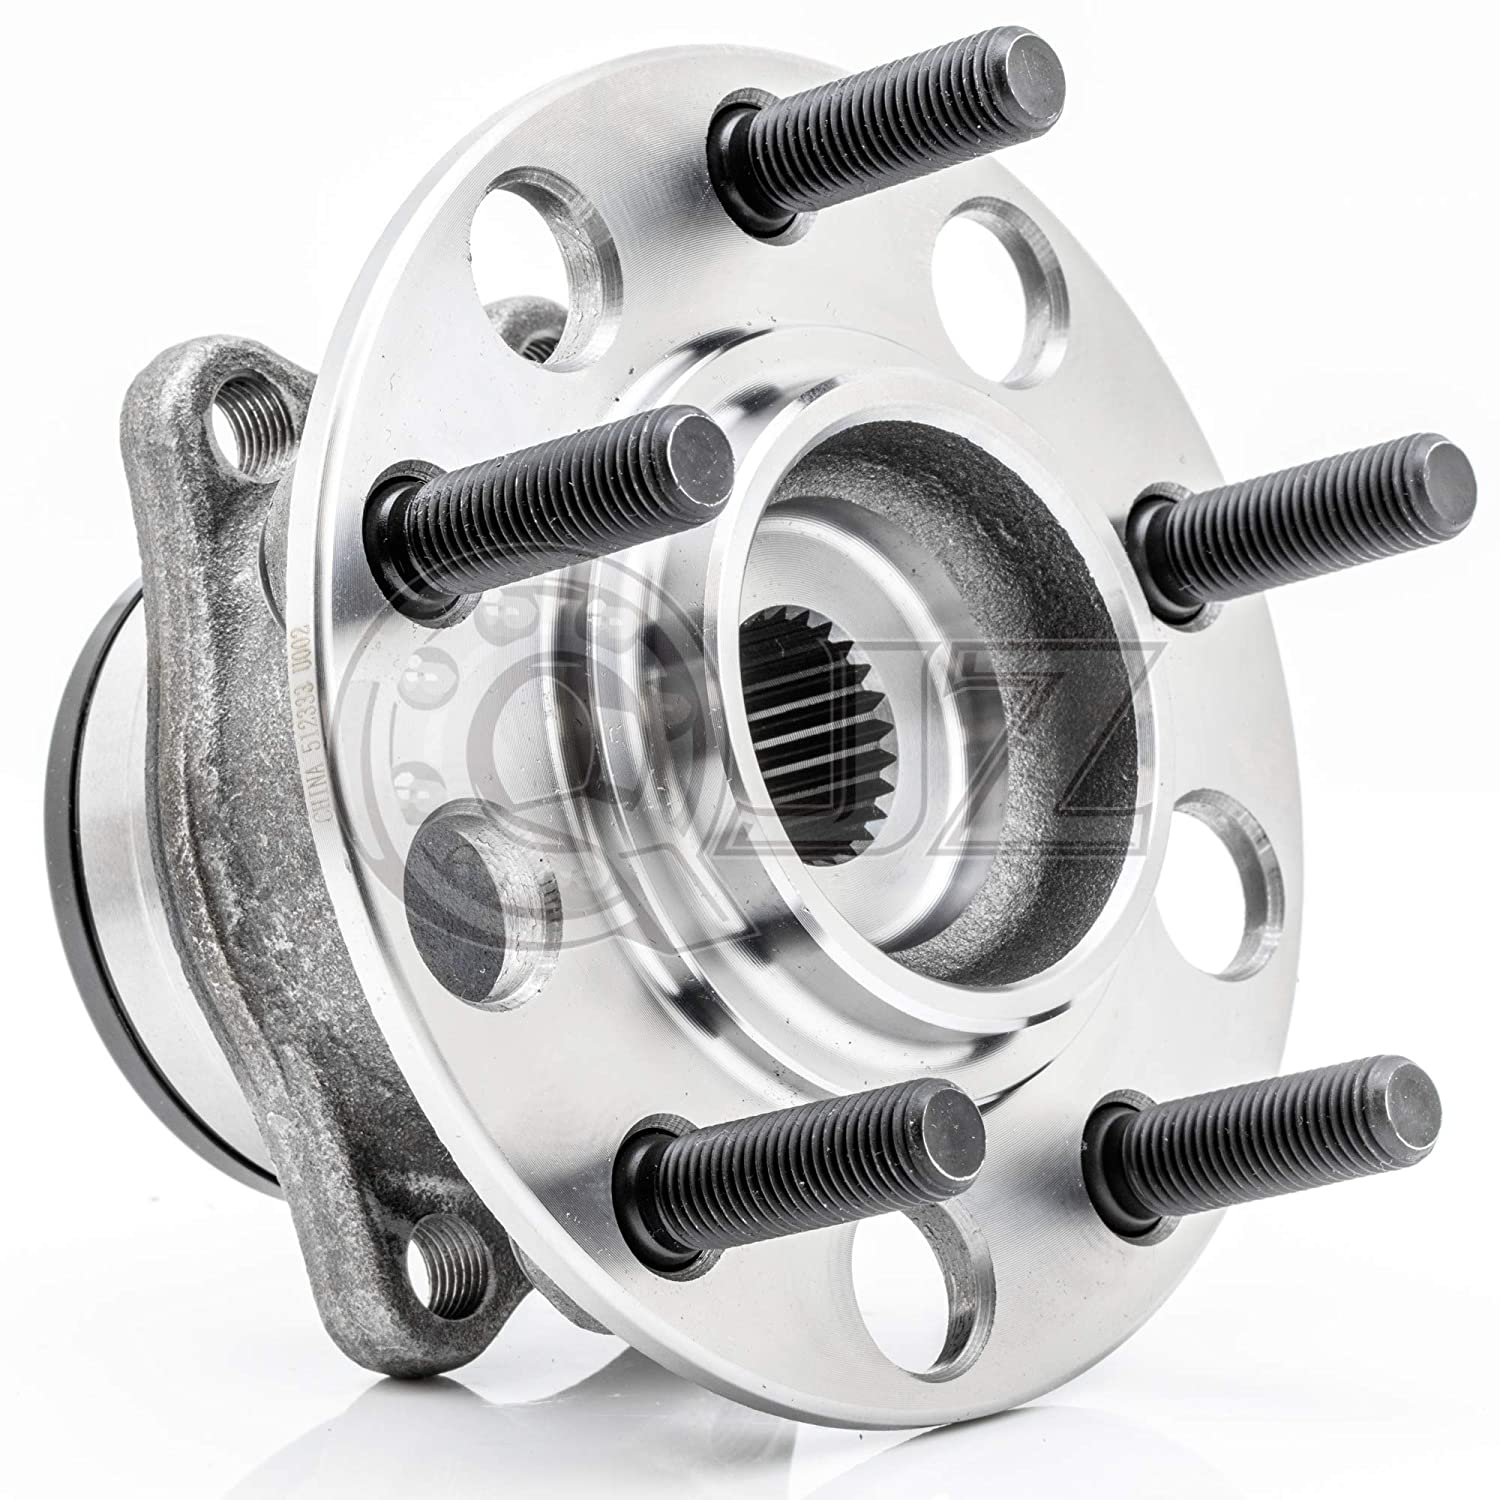 512333 New Rear Wheel Hub /& Bearing Assembly for Dodge 2007-2008 Caliber 4x4 // 4WD Model Jeep 2007-2017 Compass 4x4 // 4WD Model Patriot 2007-2017 4x4 // 4WD Model QJZ 2-Pack//Pair